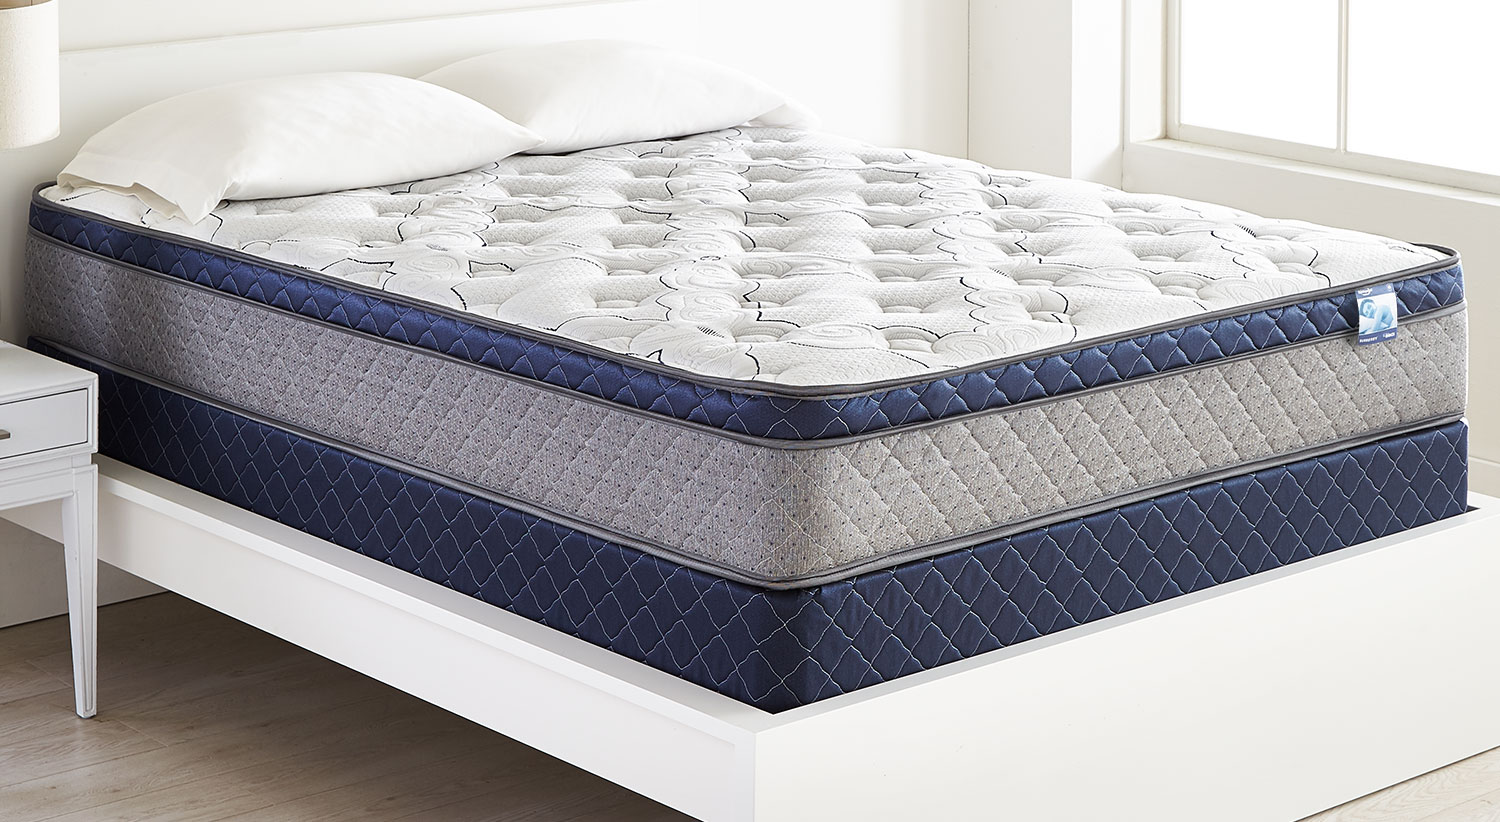 Springwall Burberry Euro-Top Firm Queen Mattress Set